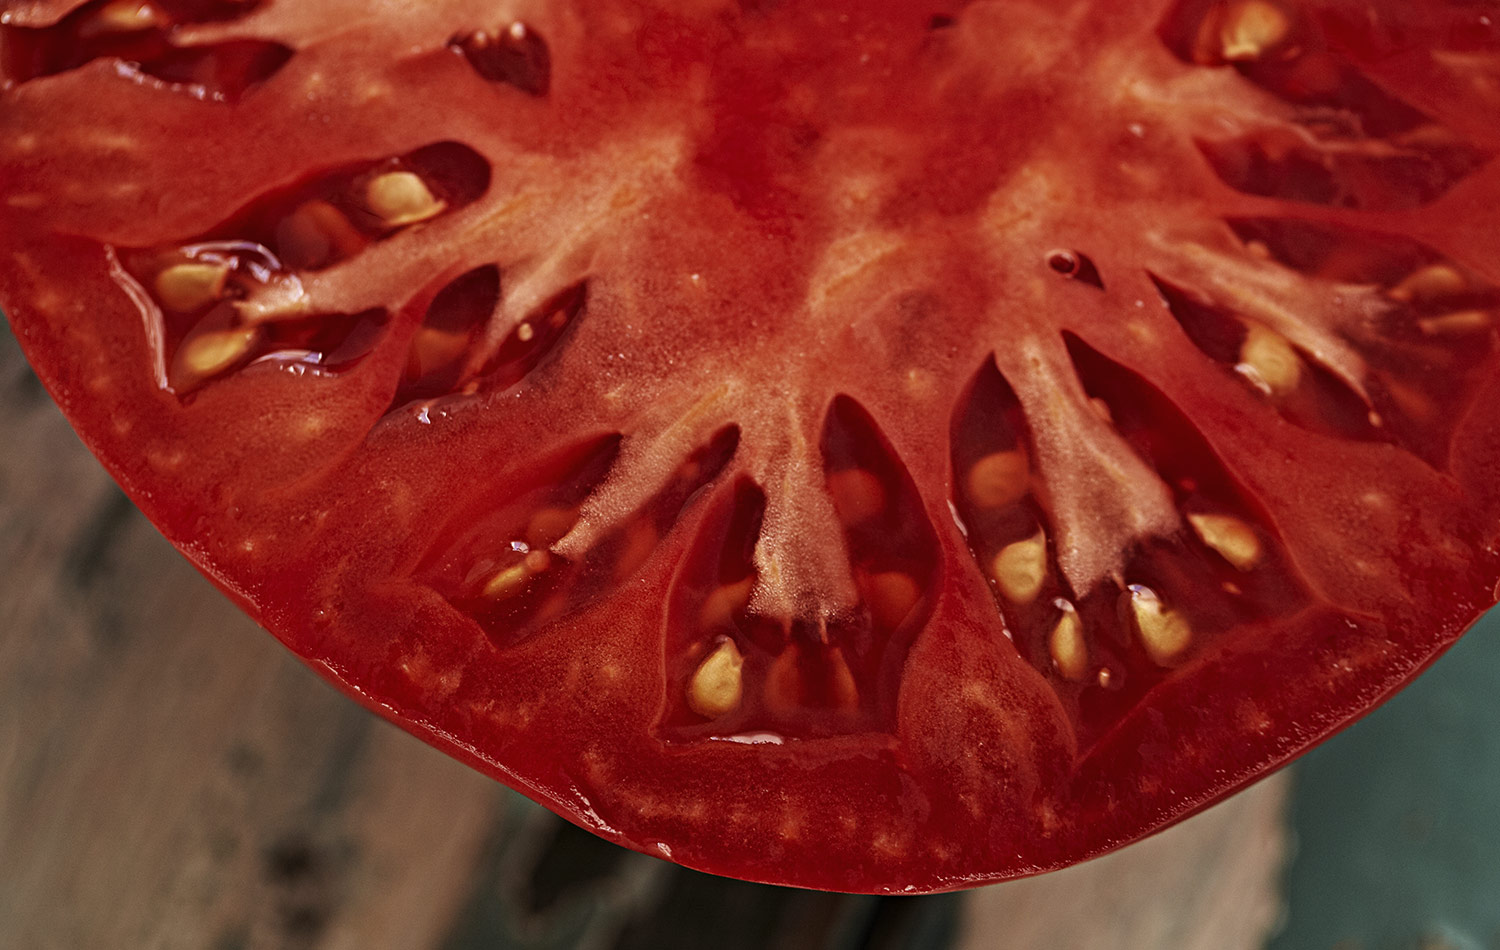 Look at the beauty and colour of this exquisite tomato. Not to mention the seed count. I love this tomato because it is so seedy and juicy and tastes so divine. I cannot tell you how much I miss it when the season ends.